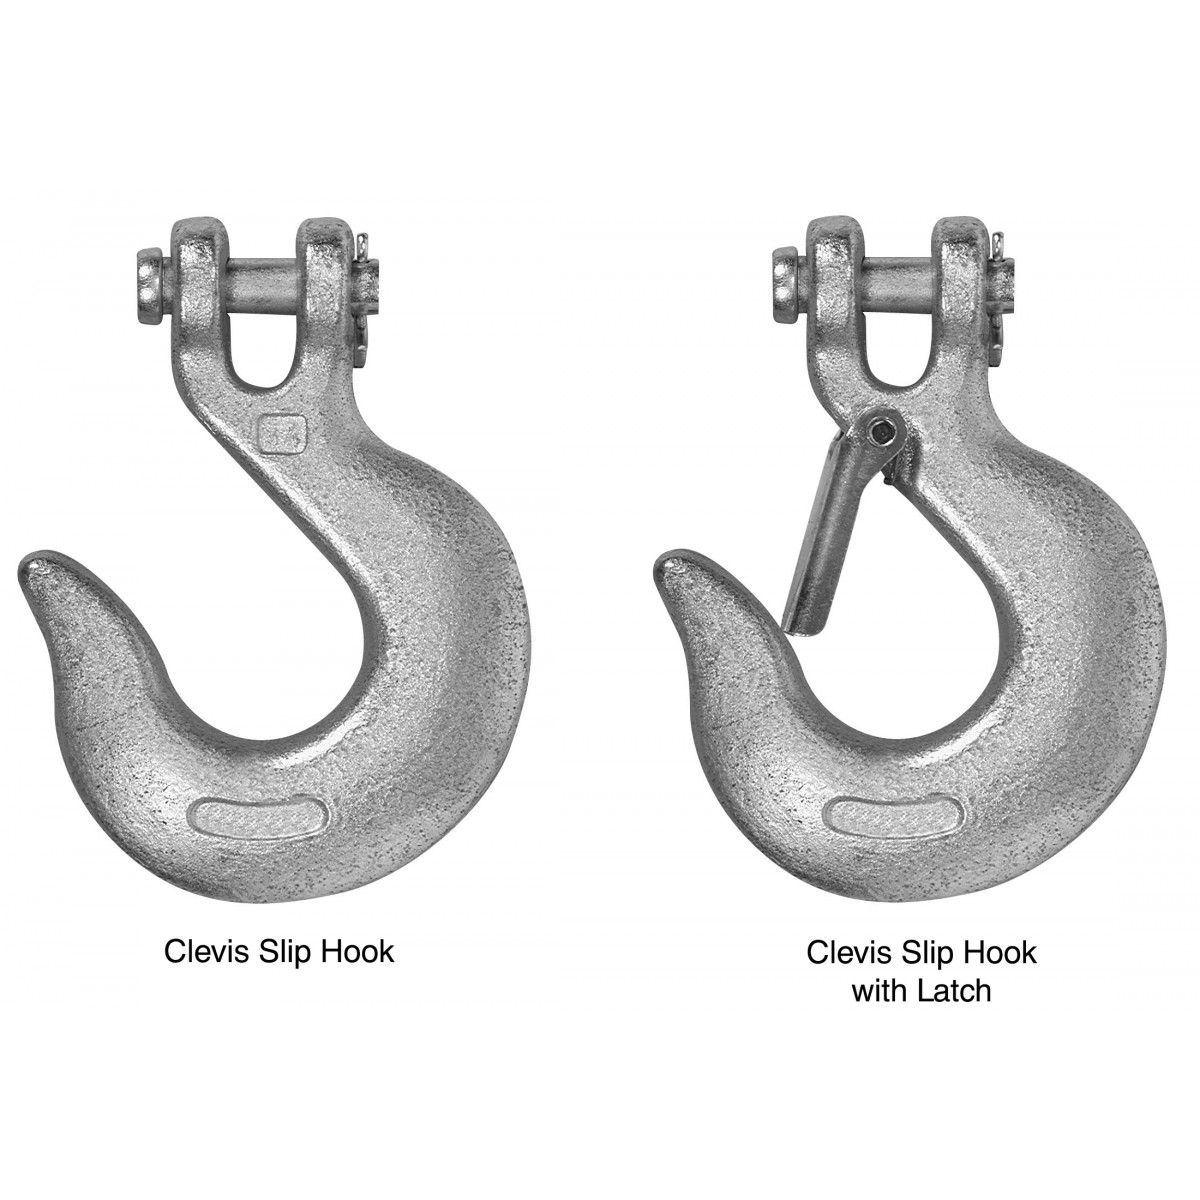 Picture of Campbell T9401424 Clevis Slip Hook, 1/4 in Trade, 2600 lb Working Load, 43 Grade, Steel, Zinc